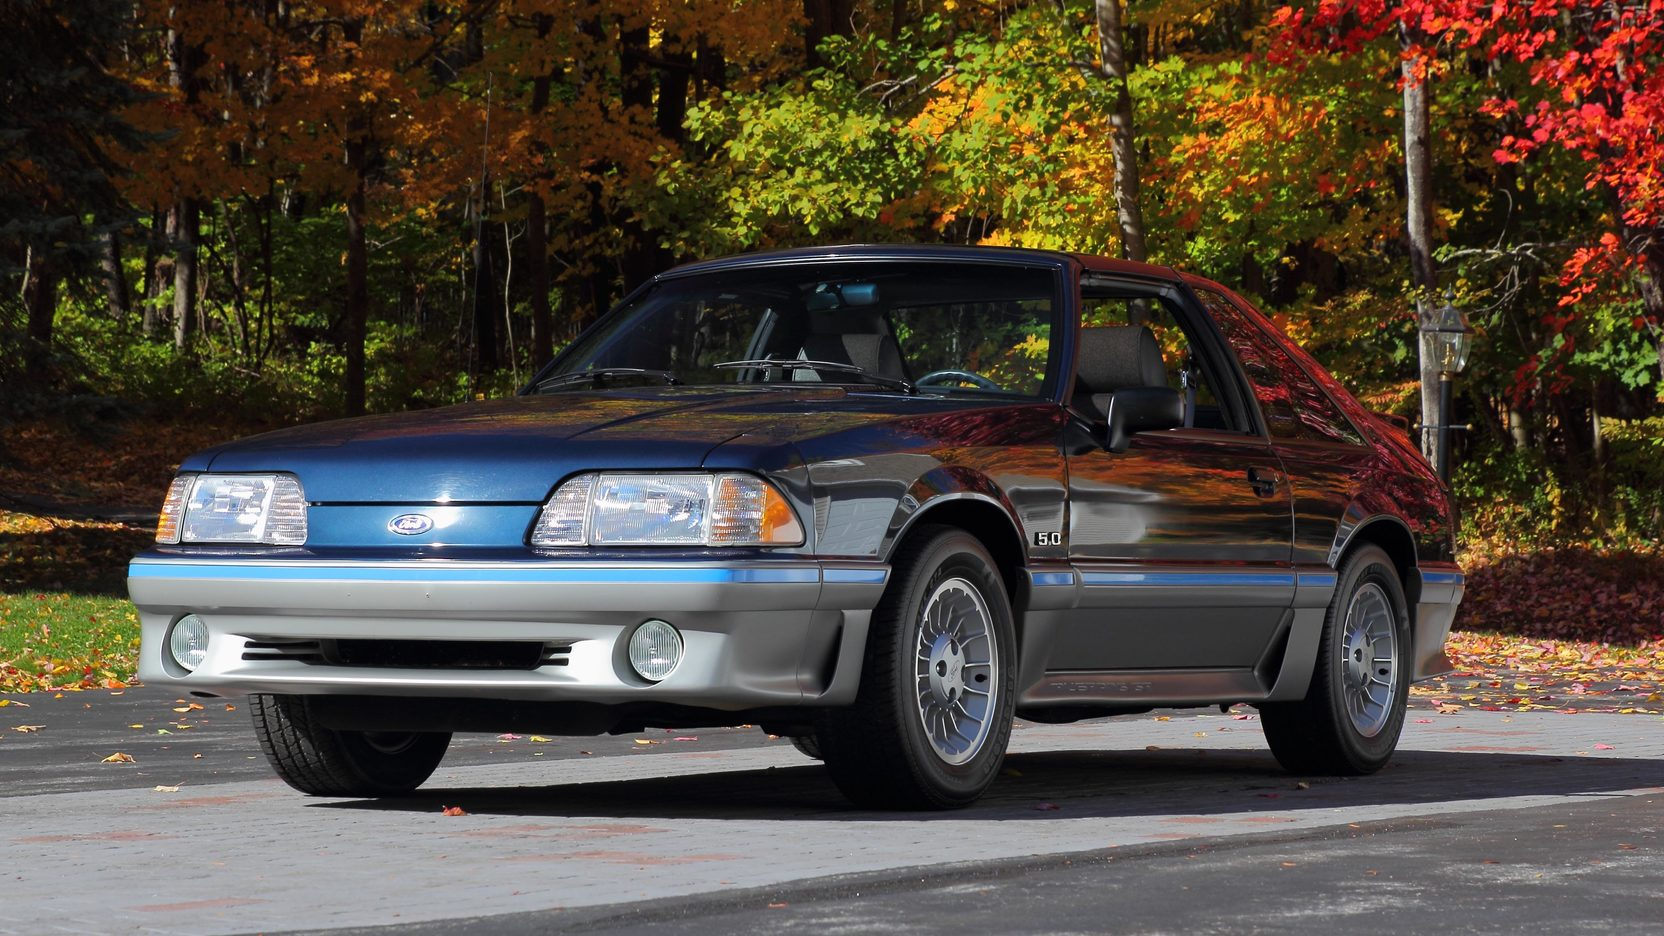 1988 Ford Mustang GT front 3/4